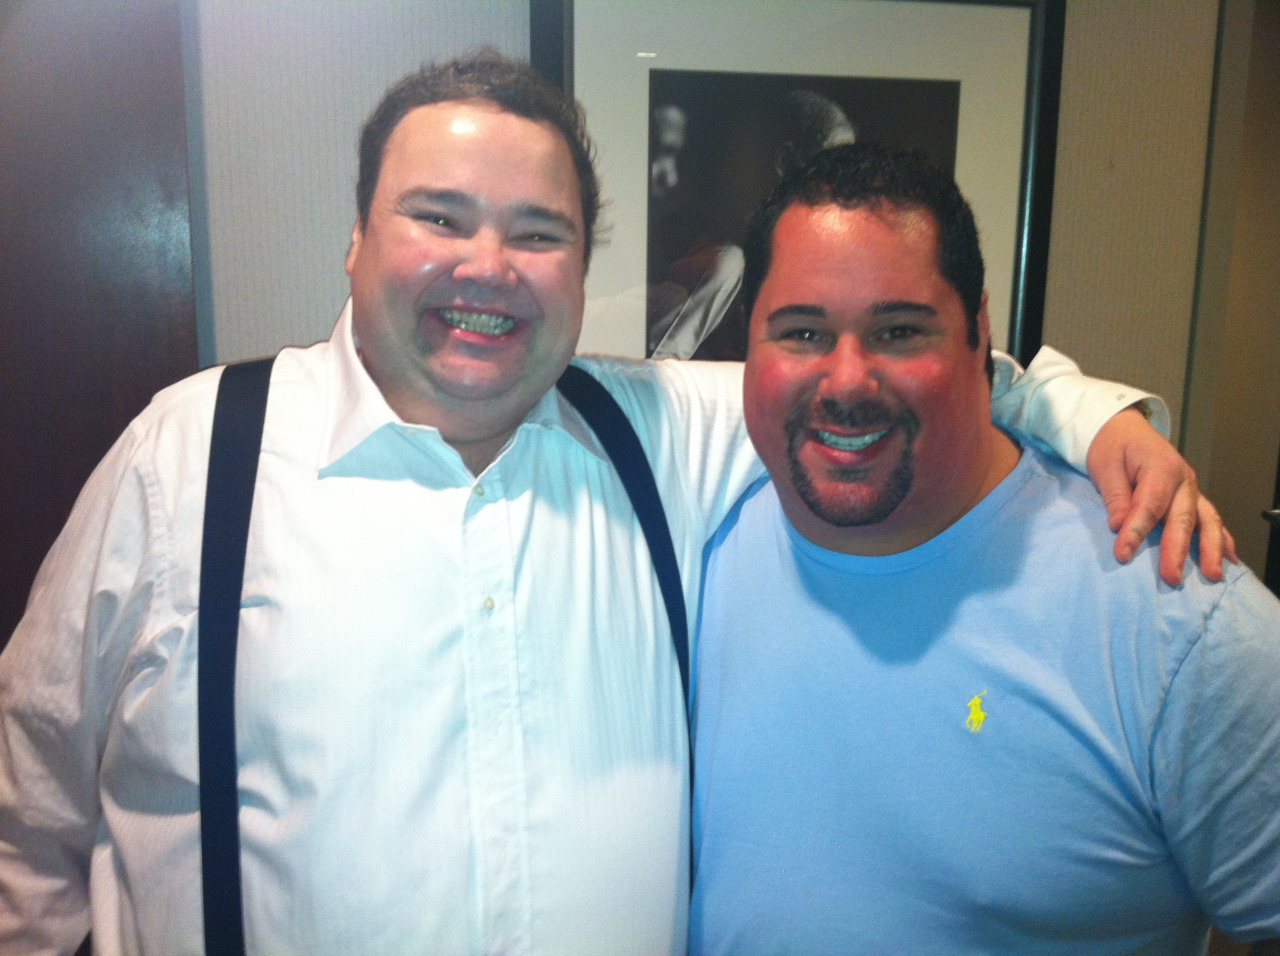 John Pinette and Geno